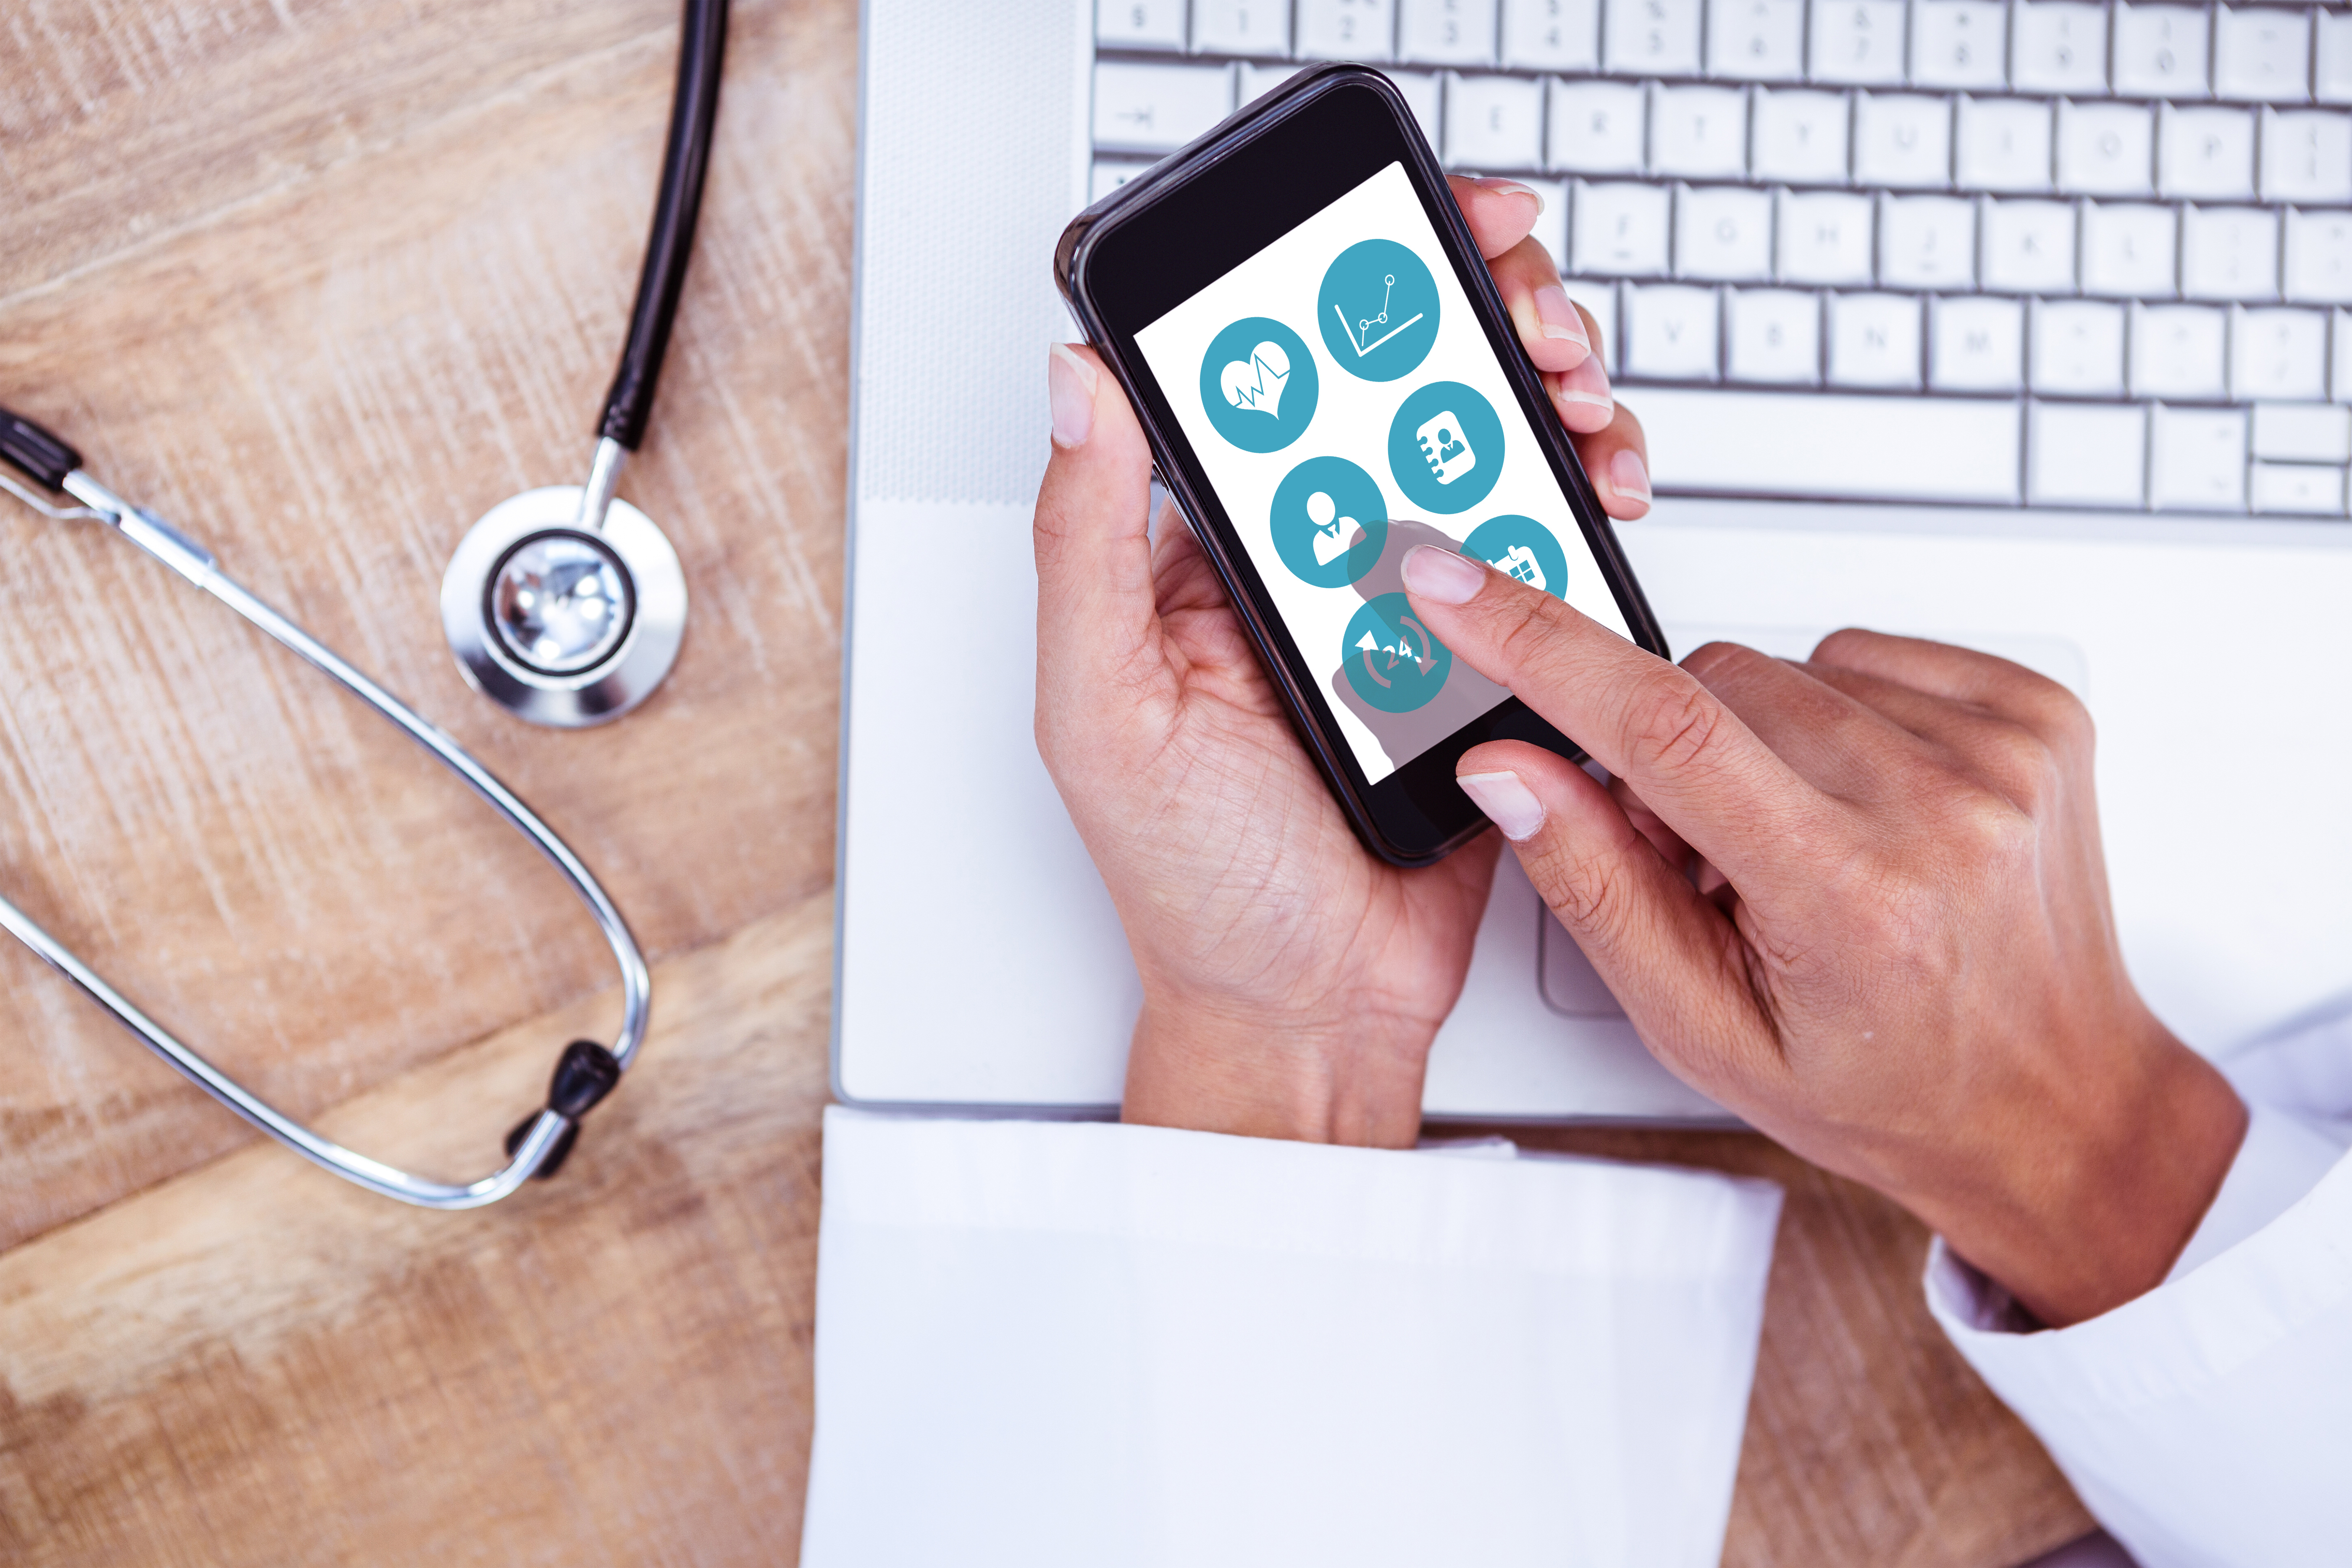 Hands in a white lab coat holding a smartphone that shows some health icons.